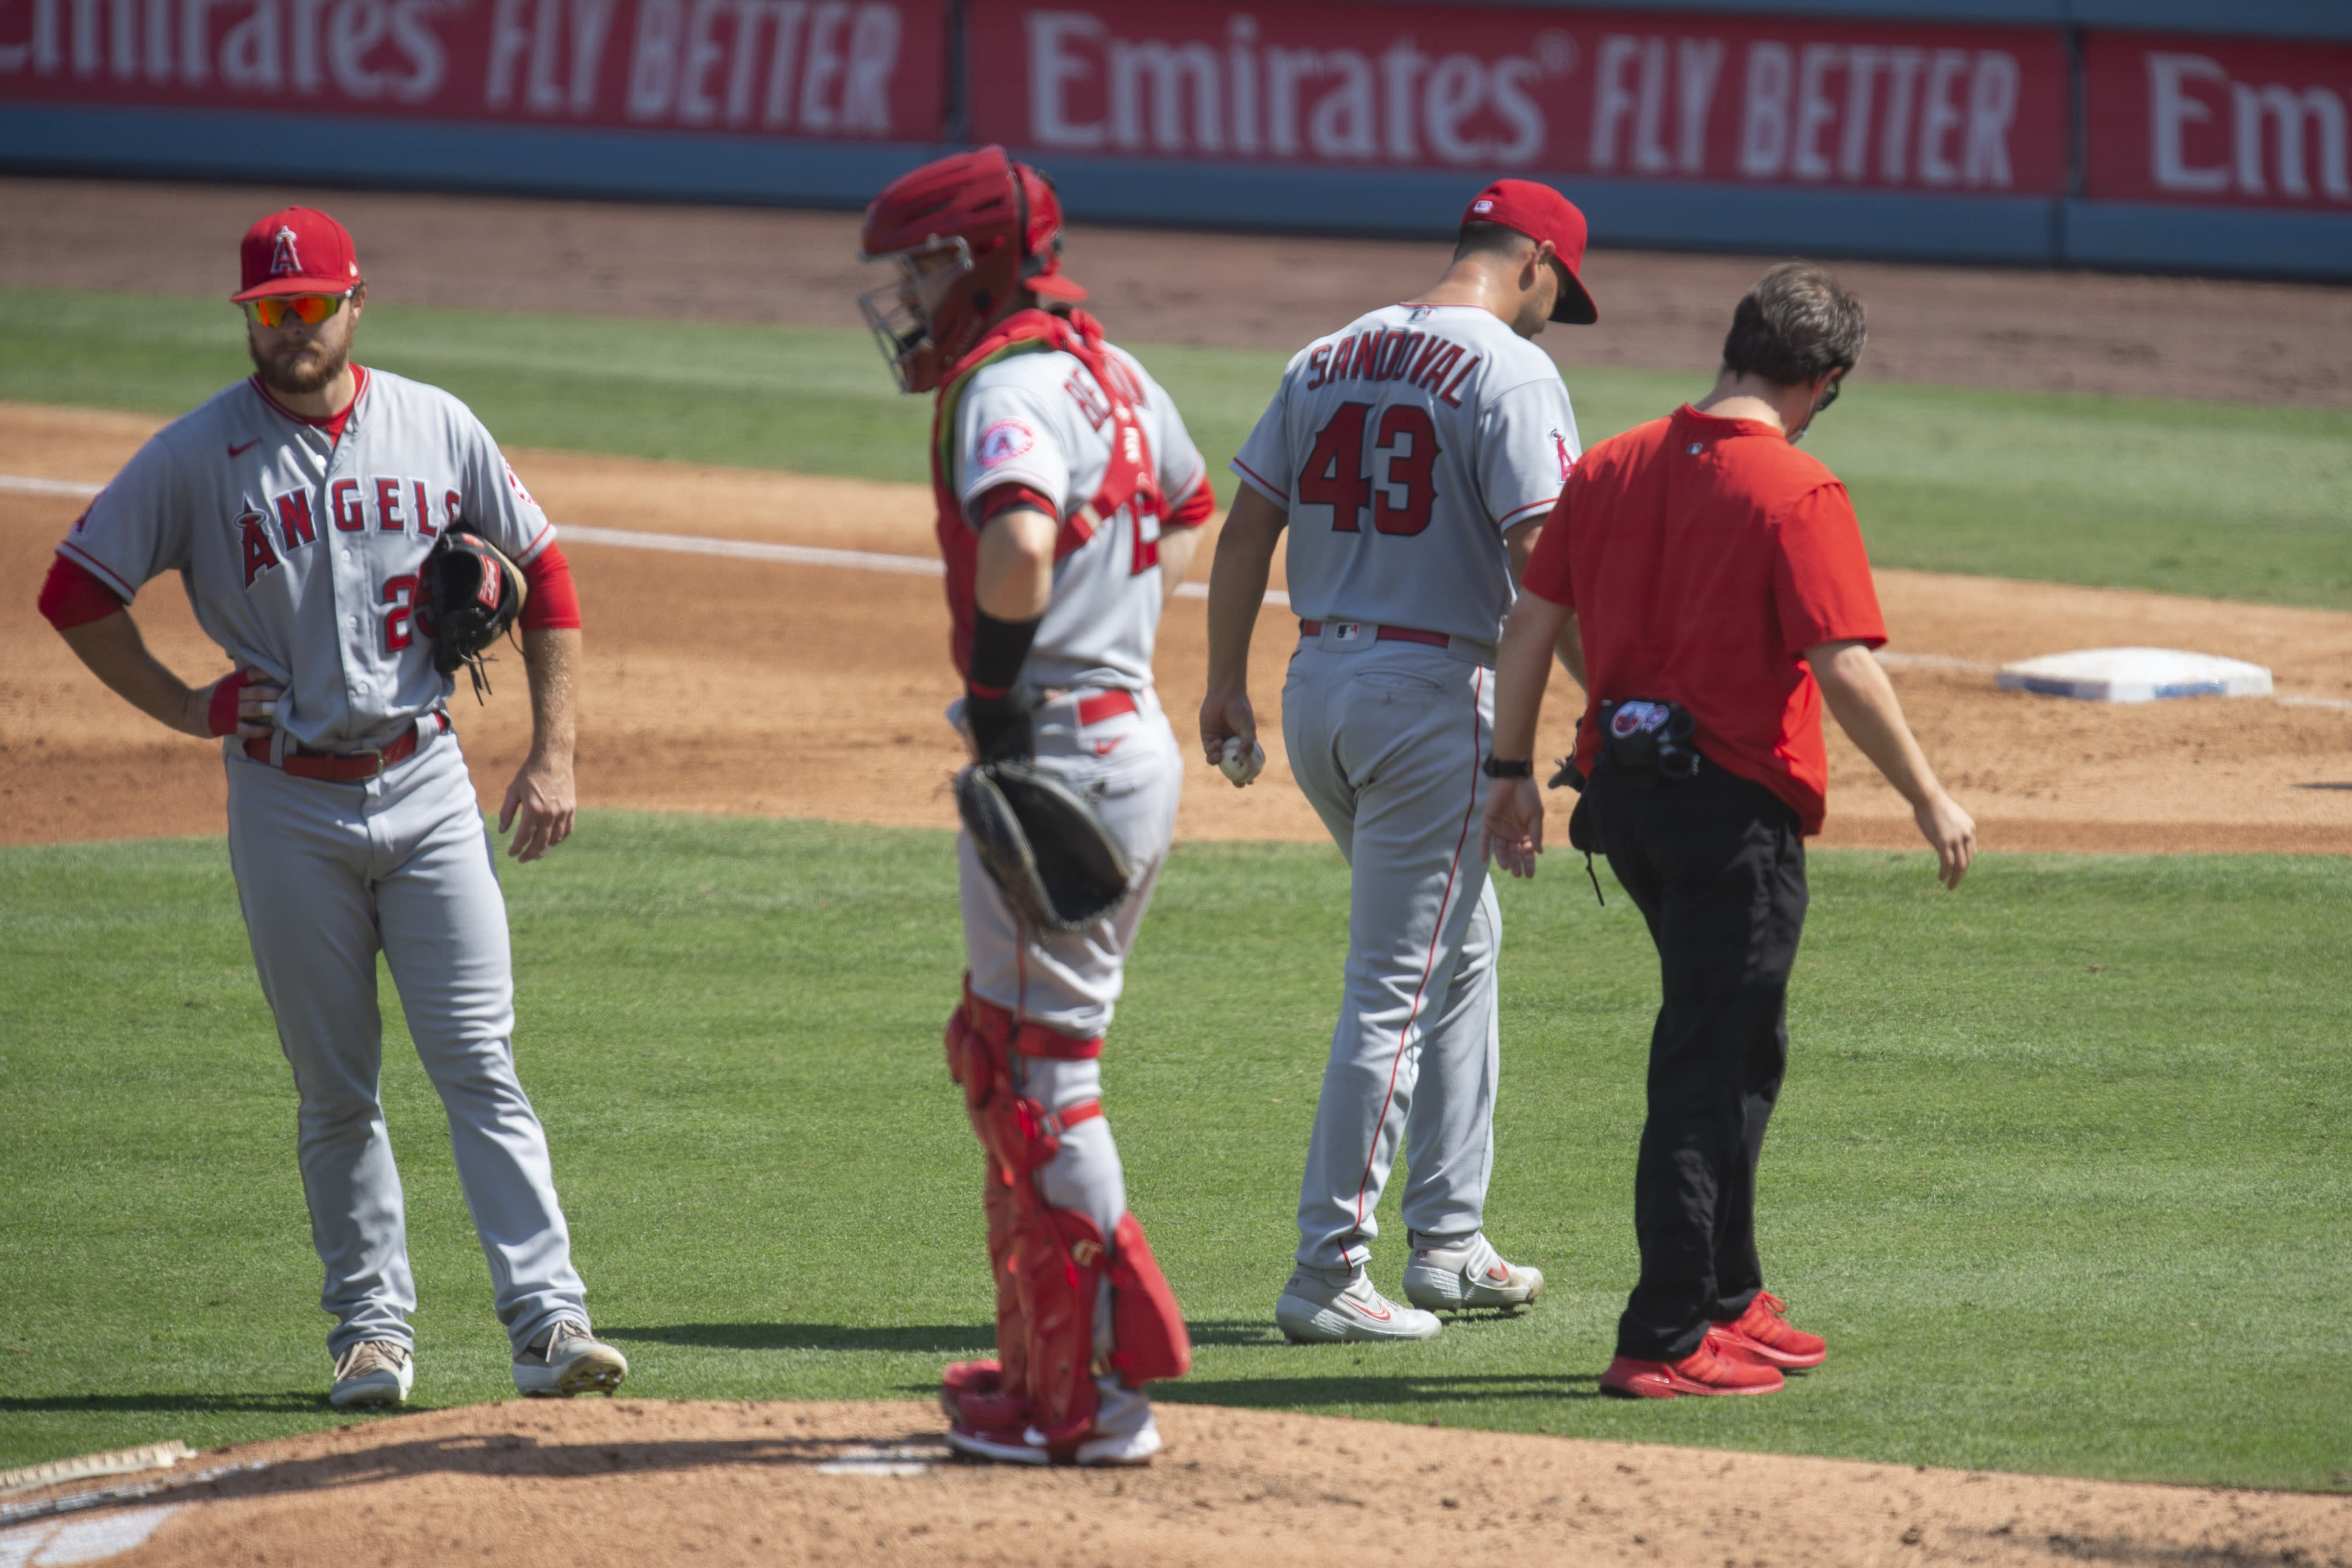 Los Angeles Angels starting pitcher Patrick Sandoval, second from right, exits with an injury during the third inning of a baseball game against the Los Angeles Dodgers in Los Angeles, Sunday, Sept. 27, 2020. (AP Photo/Kyusung Gong)